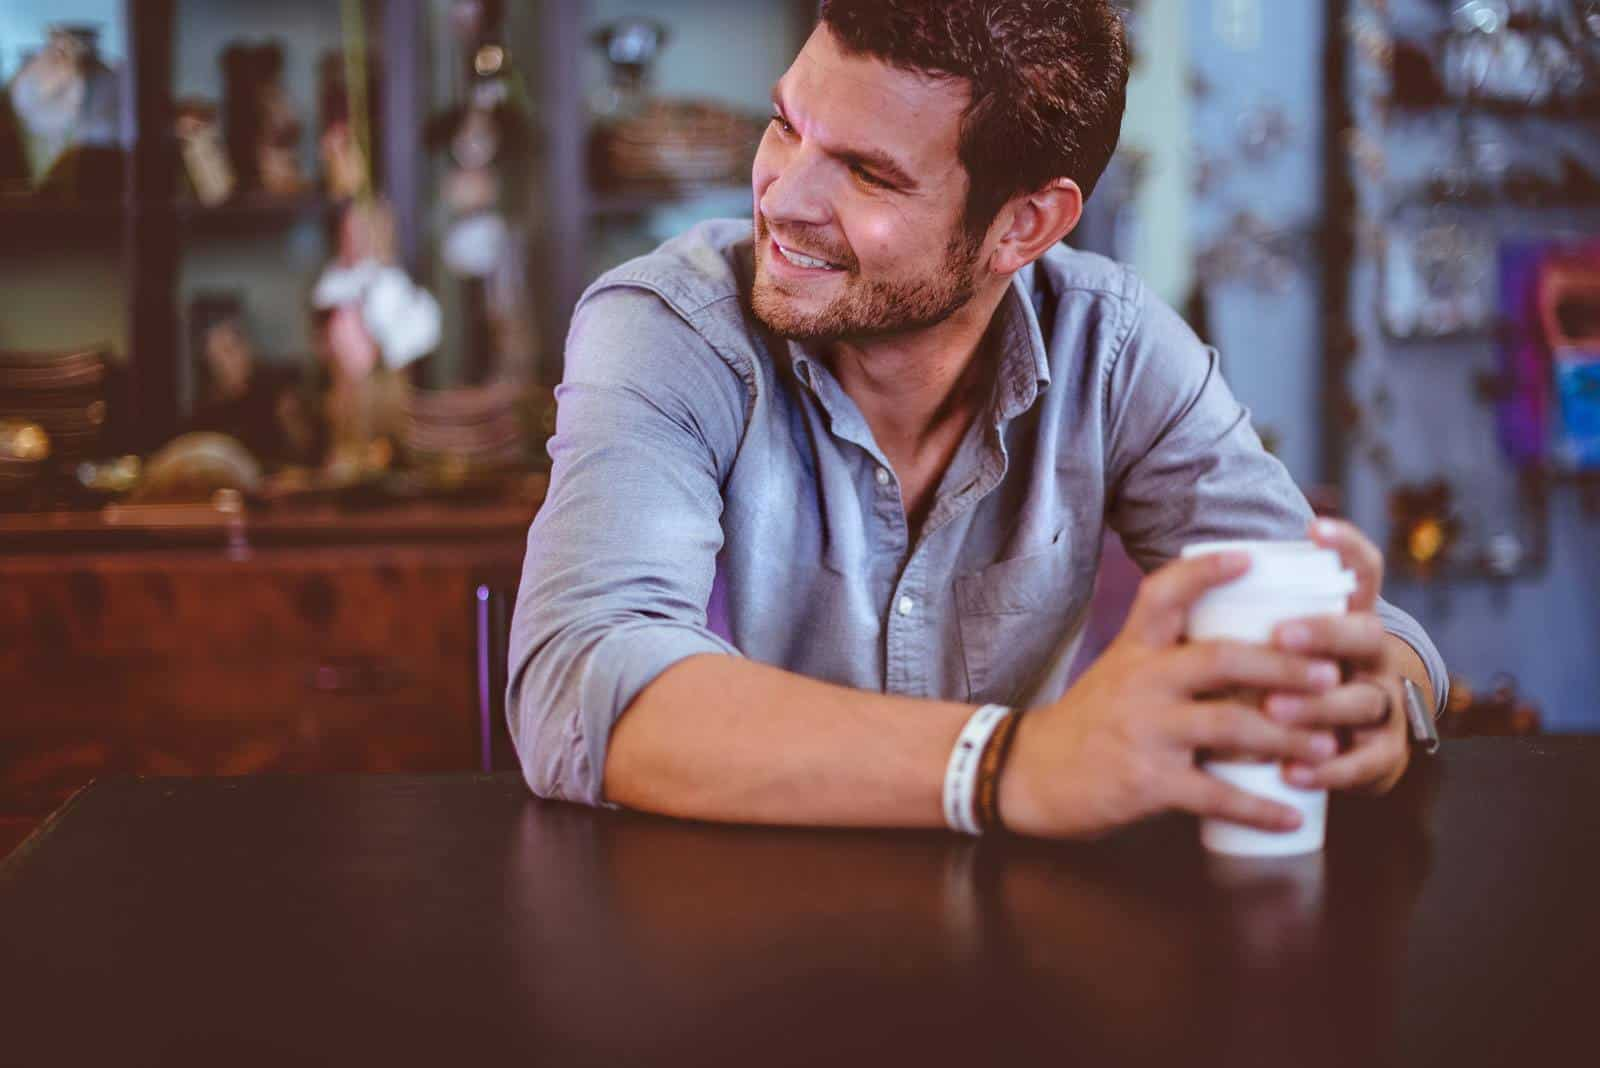 Man smiling and having coffee